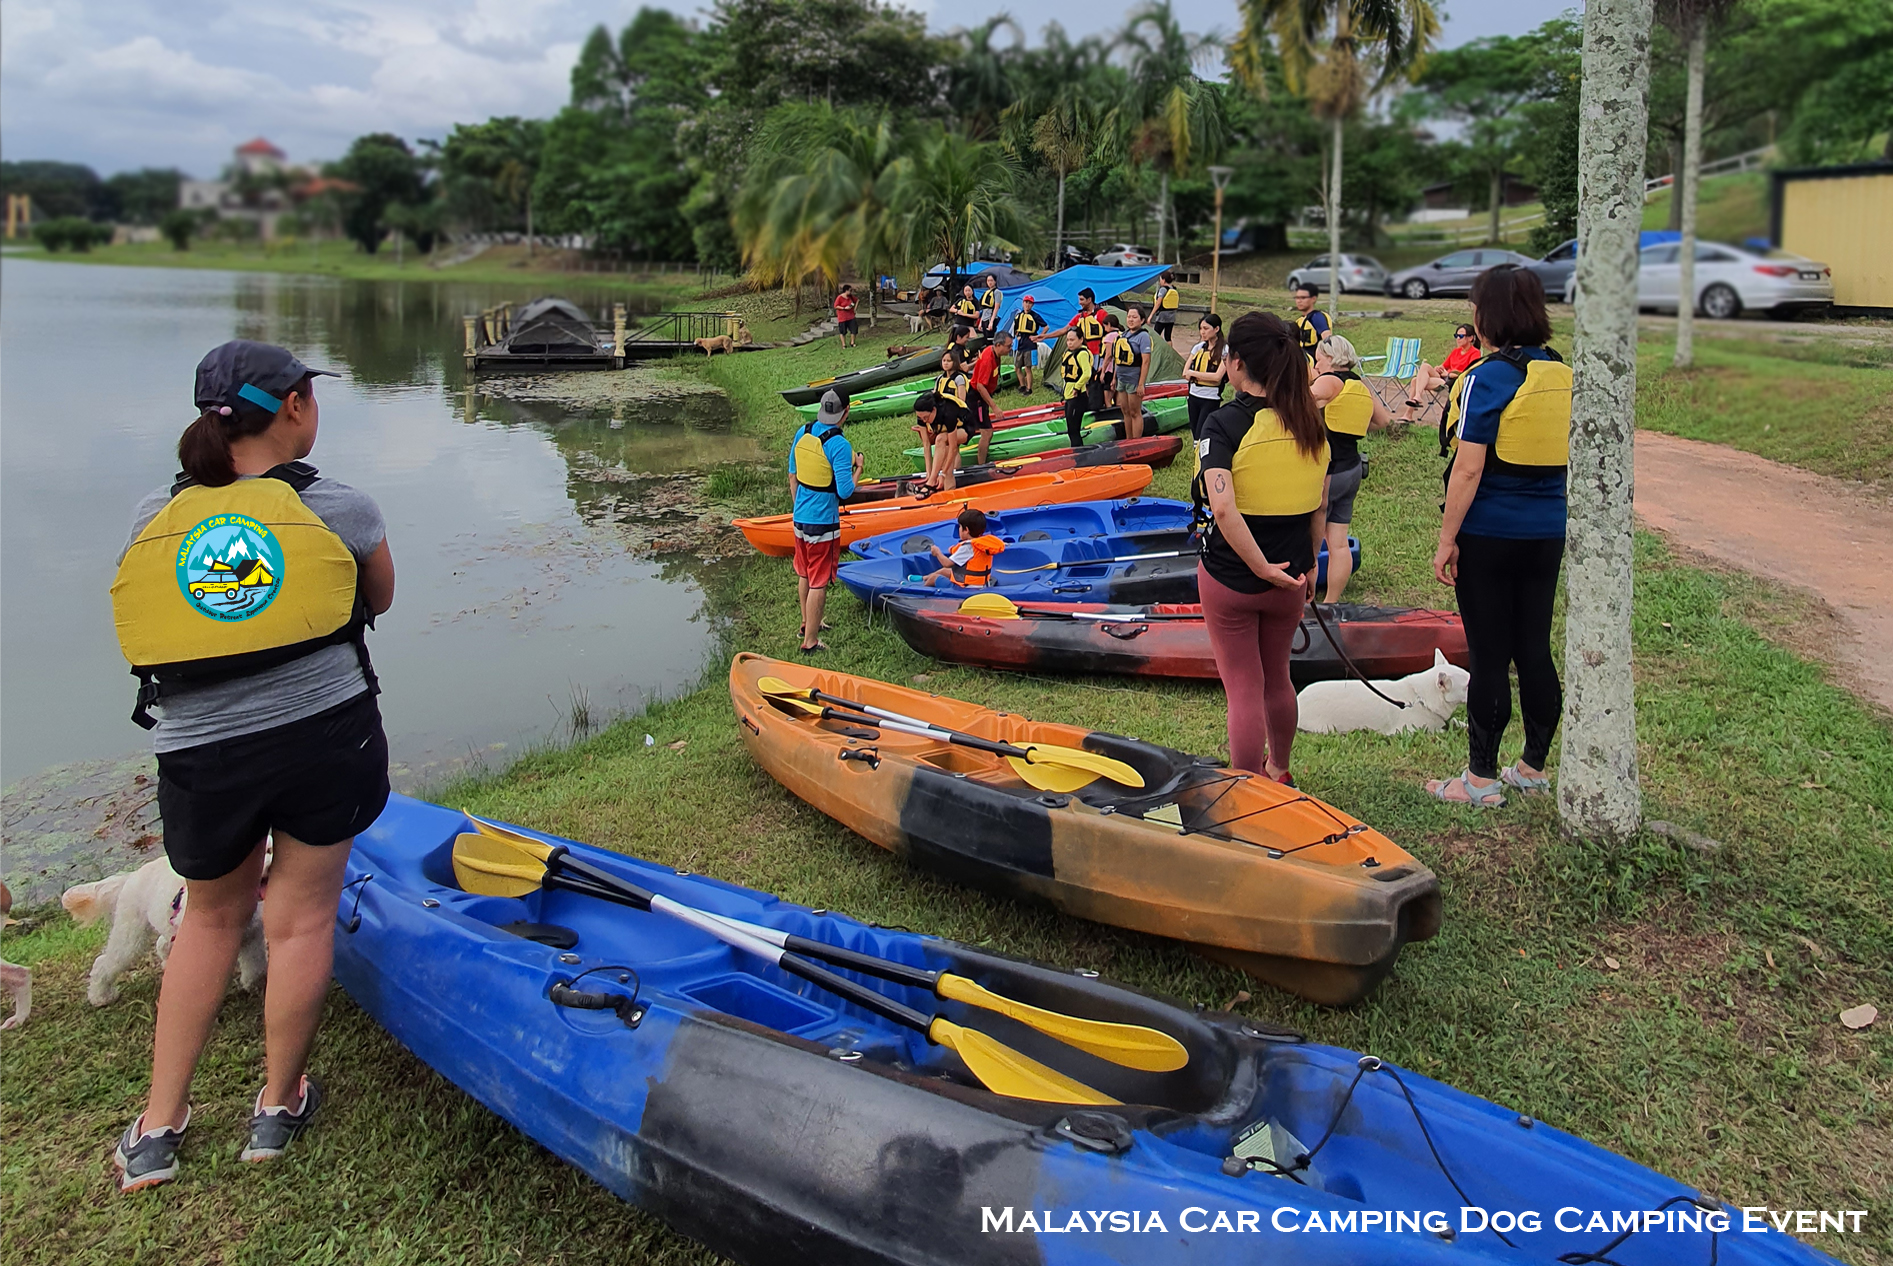 kayaking_dog_dog_camping_event_selangor_camping_site_malaysia_car_camping_private_event_organizer-1